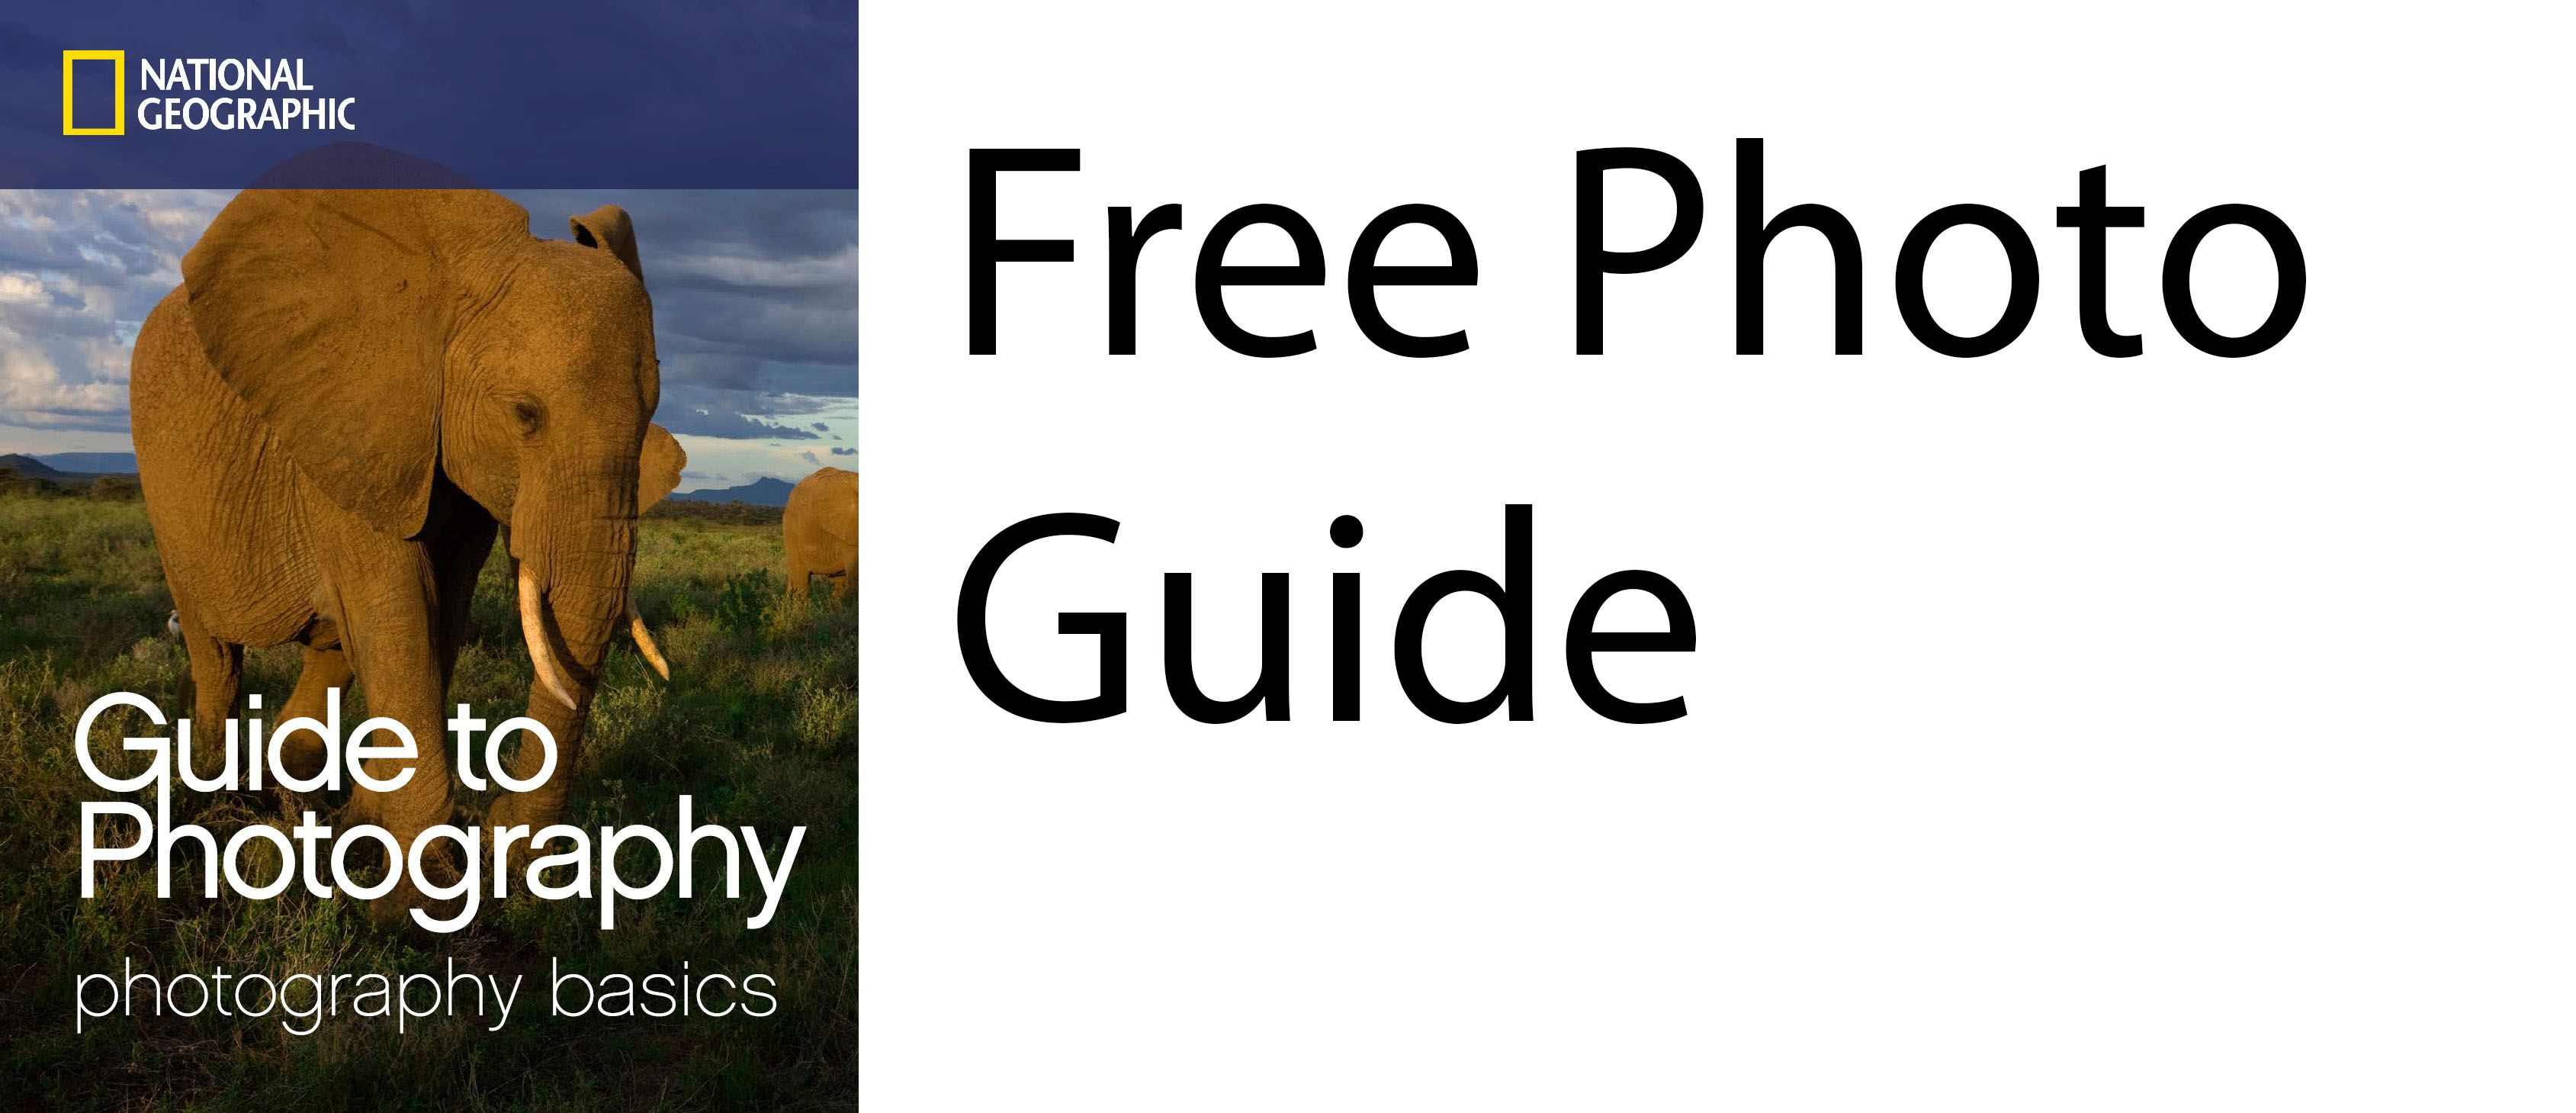 national geographic photography guide pdf